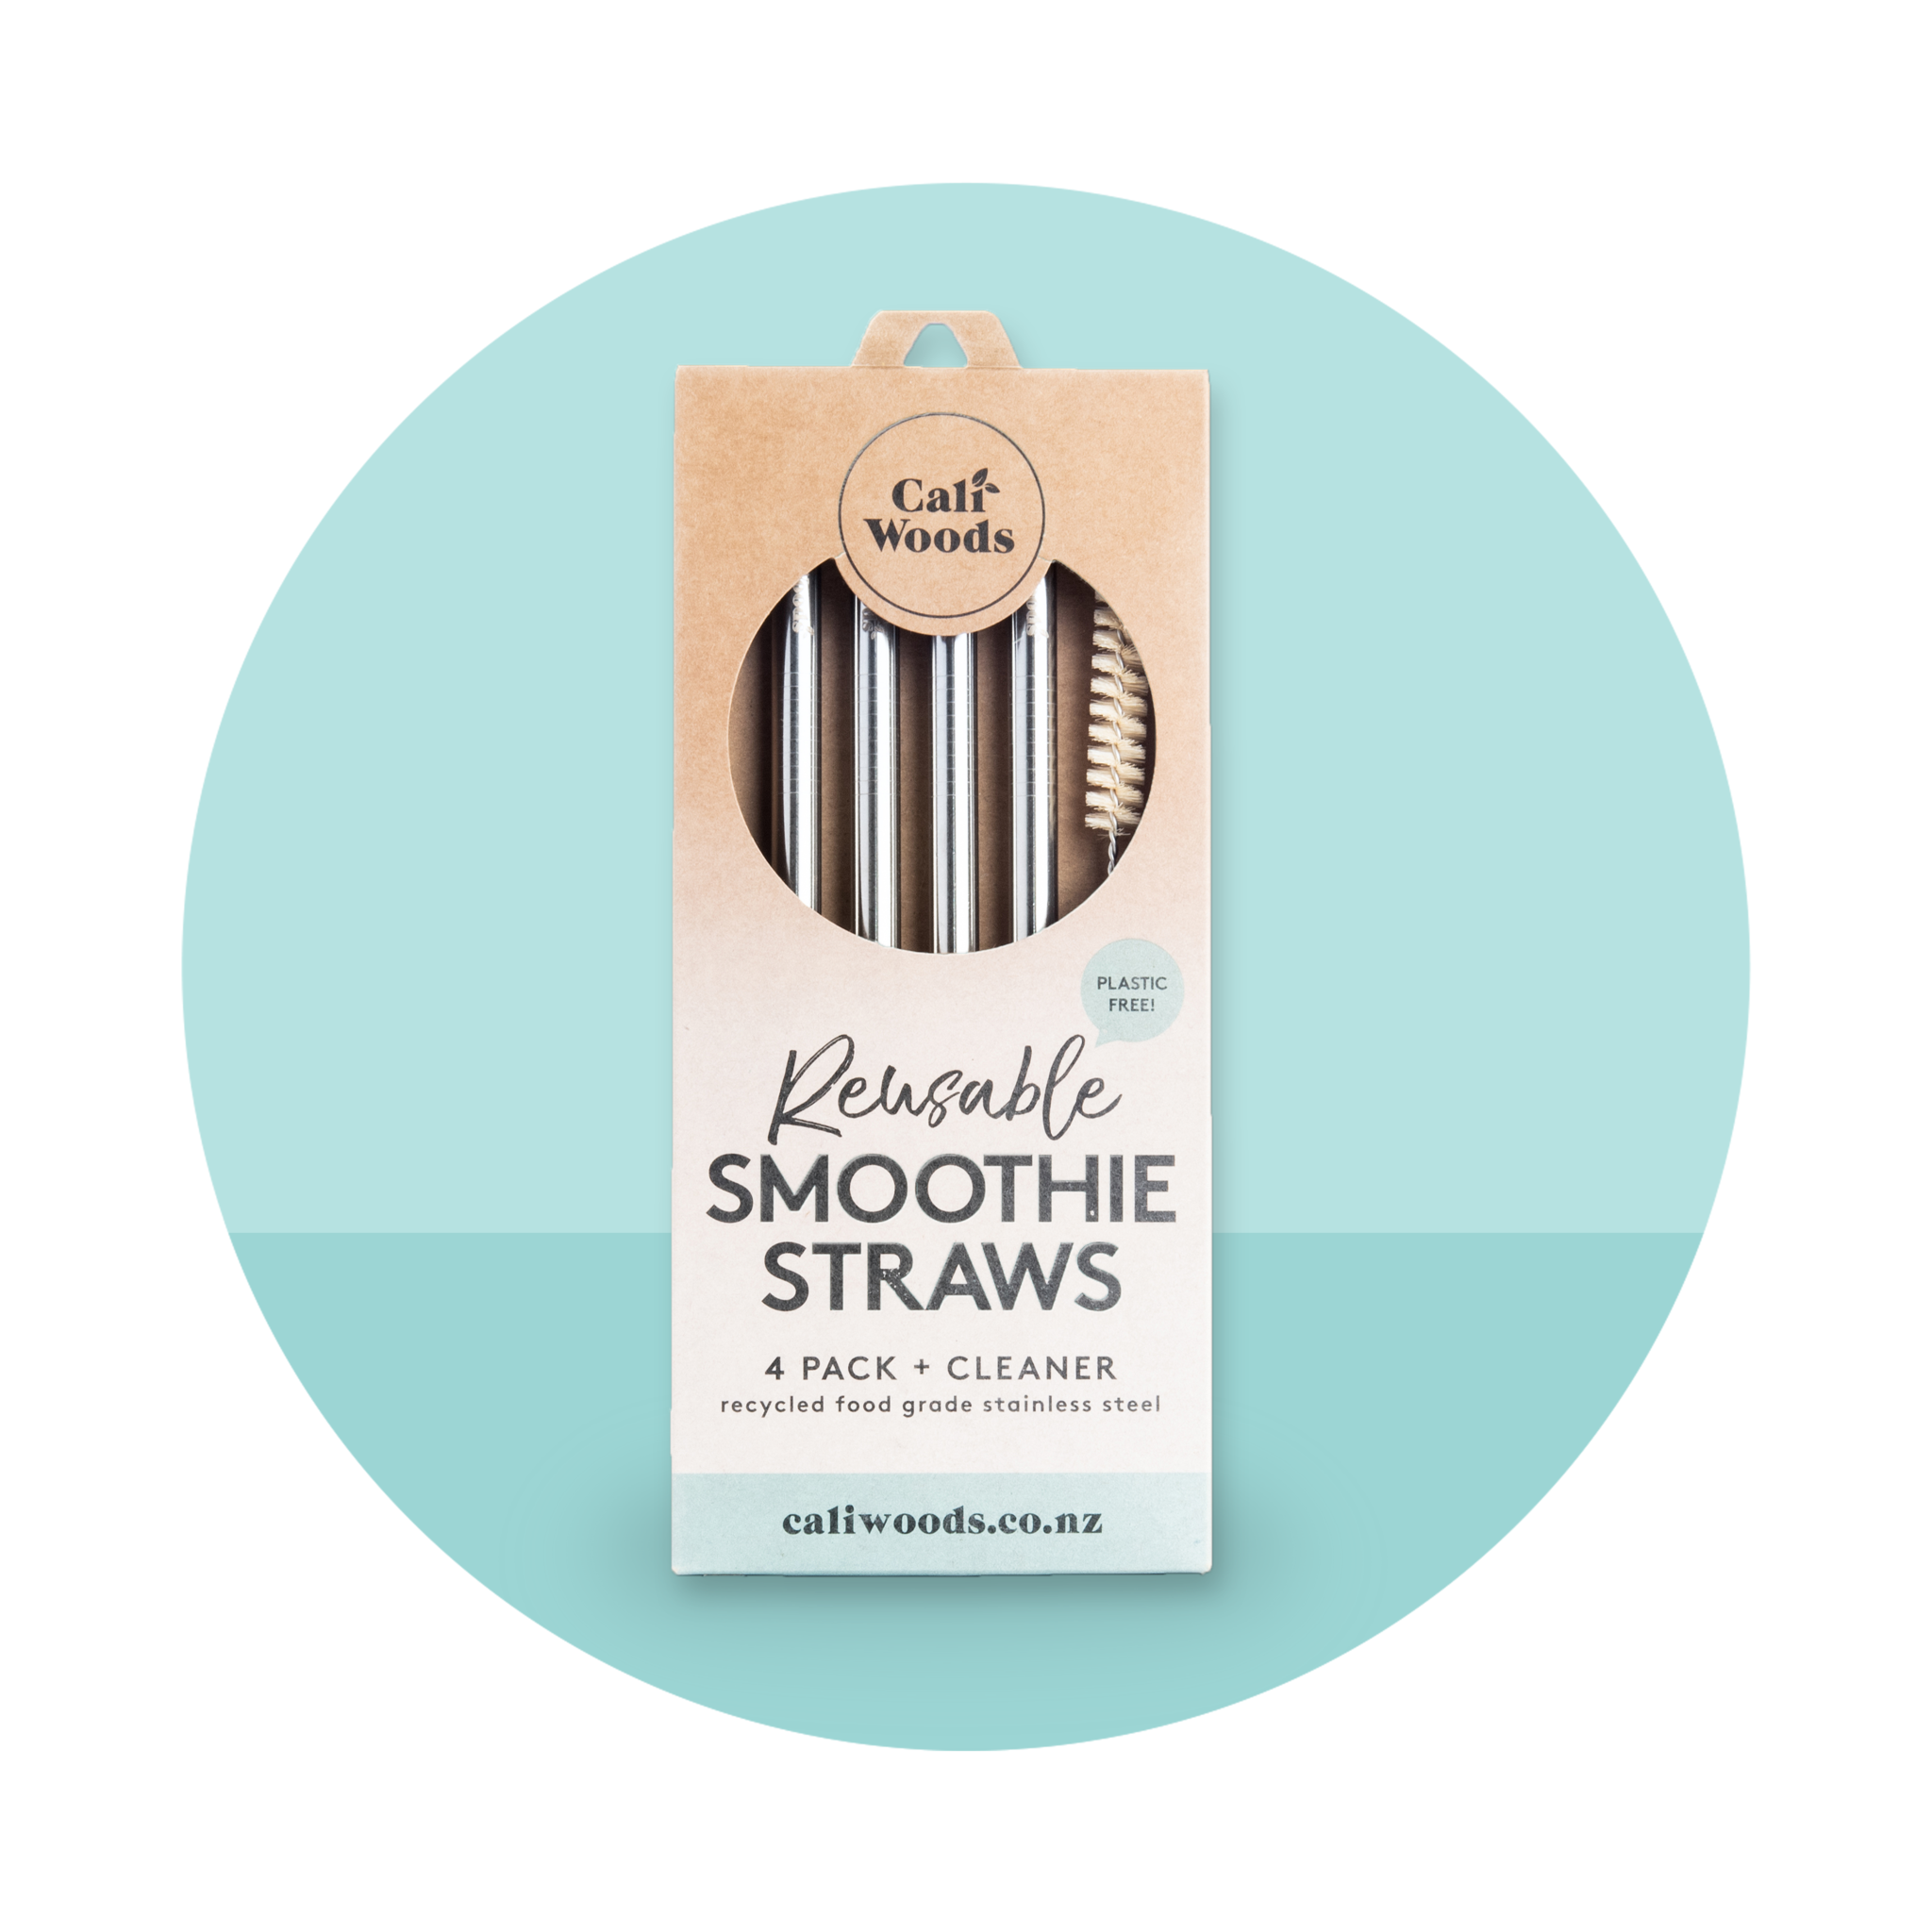 CaliWoods Smoothie Straw Packs